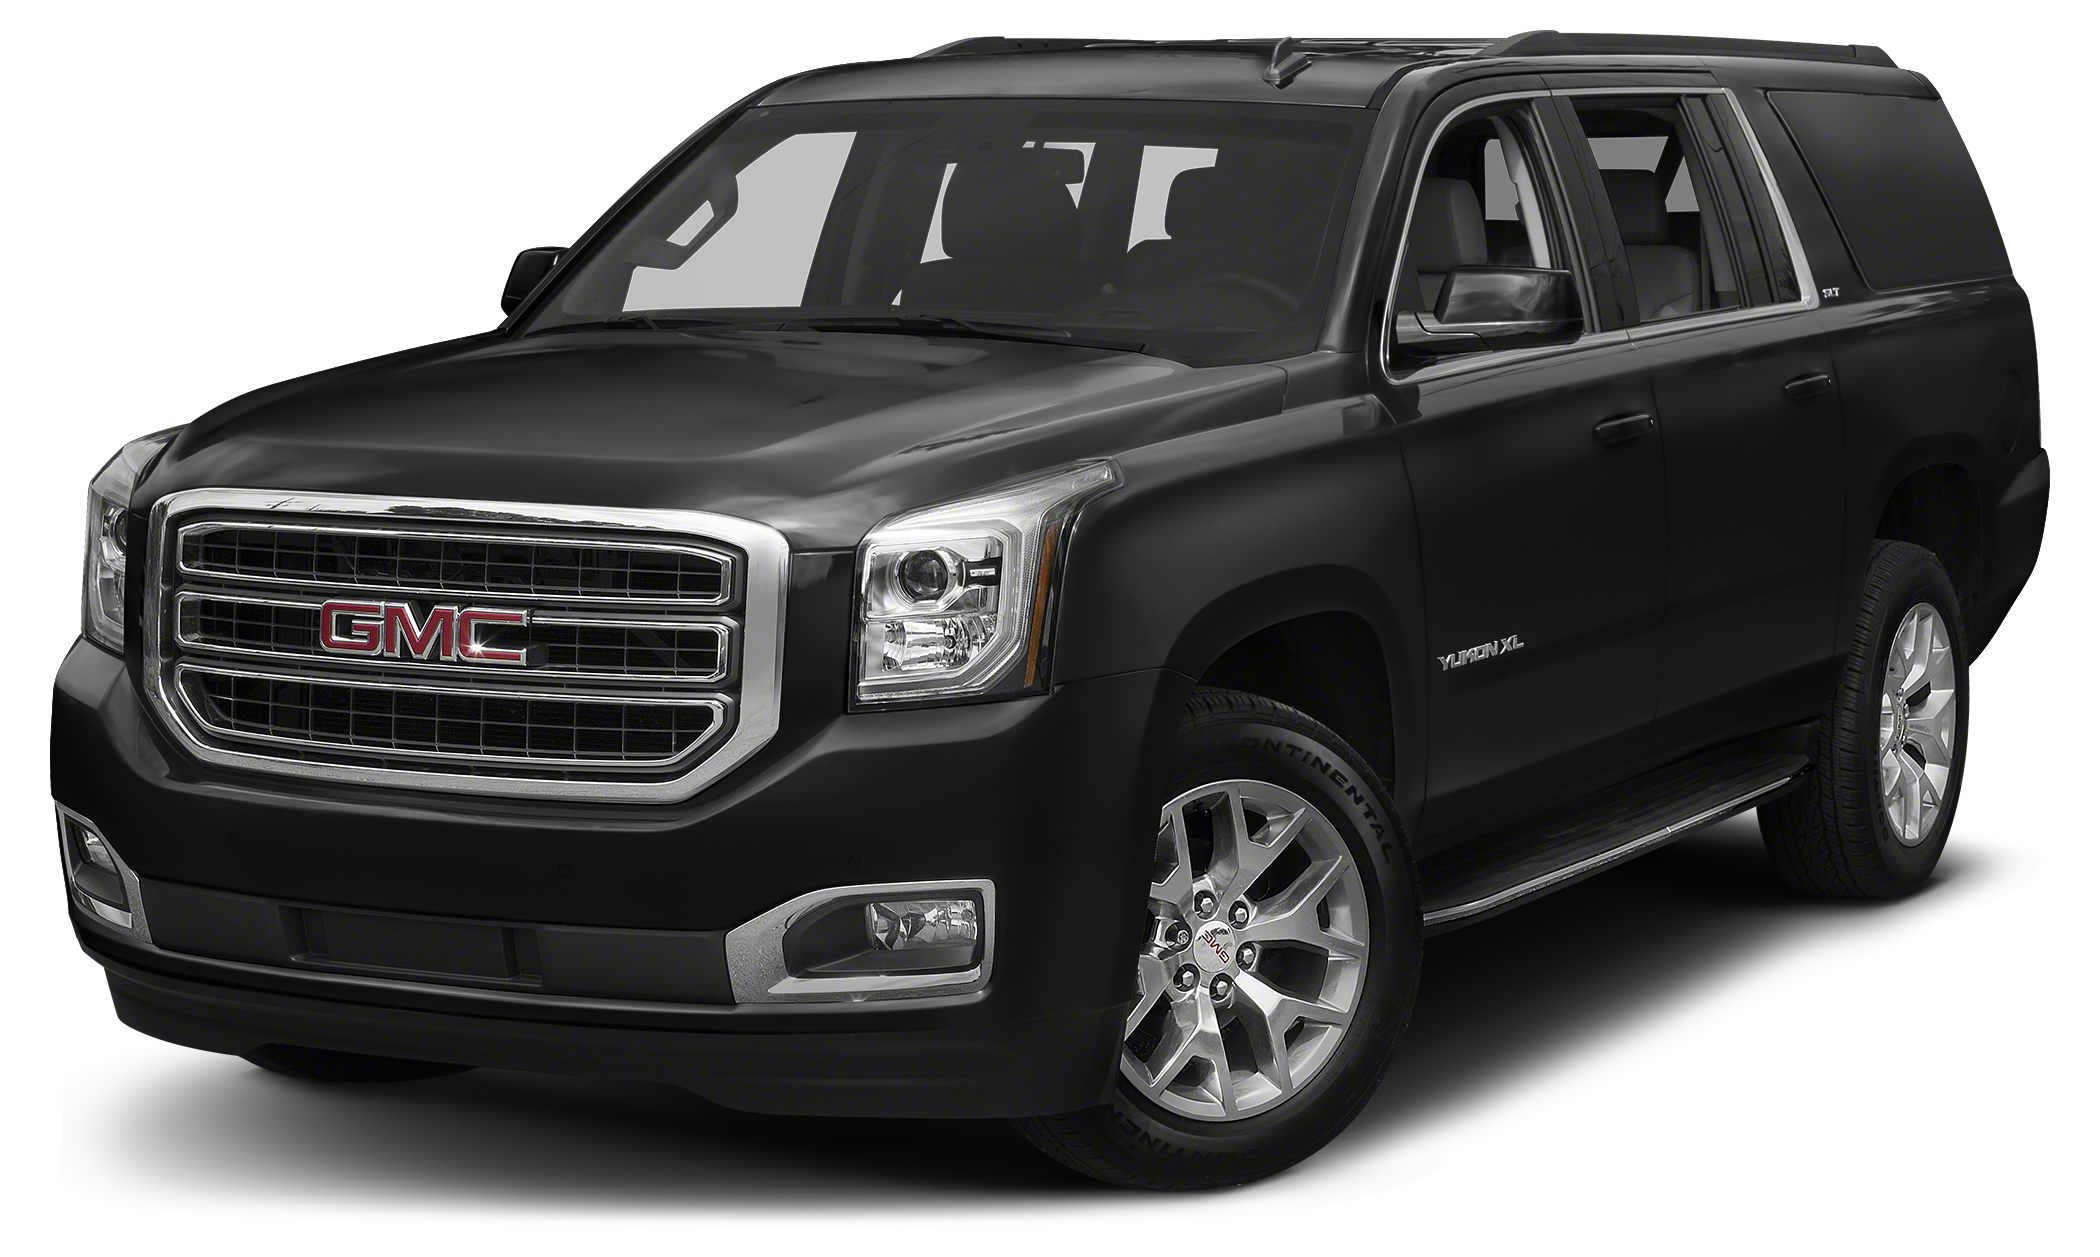 2015 GMC Yukon XL Denali Meet the all-new 2015 GMC Yukon Its spacious interior offers three rows